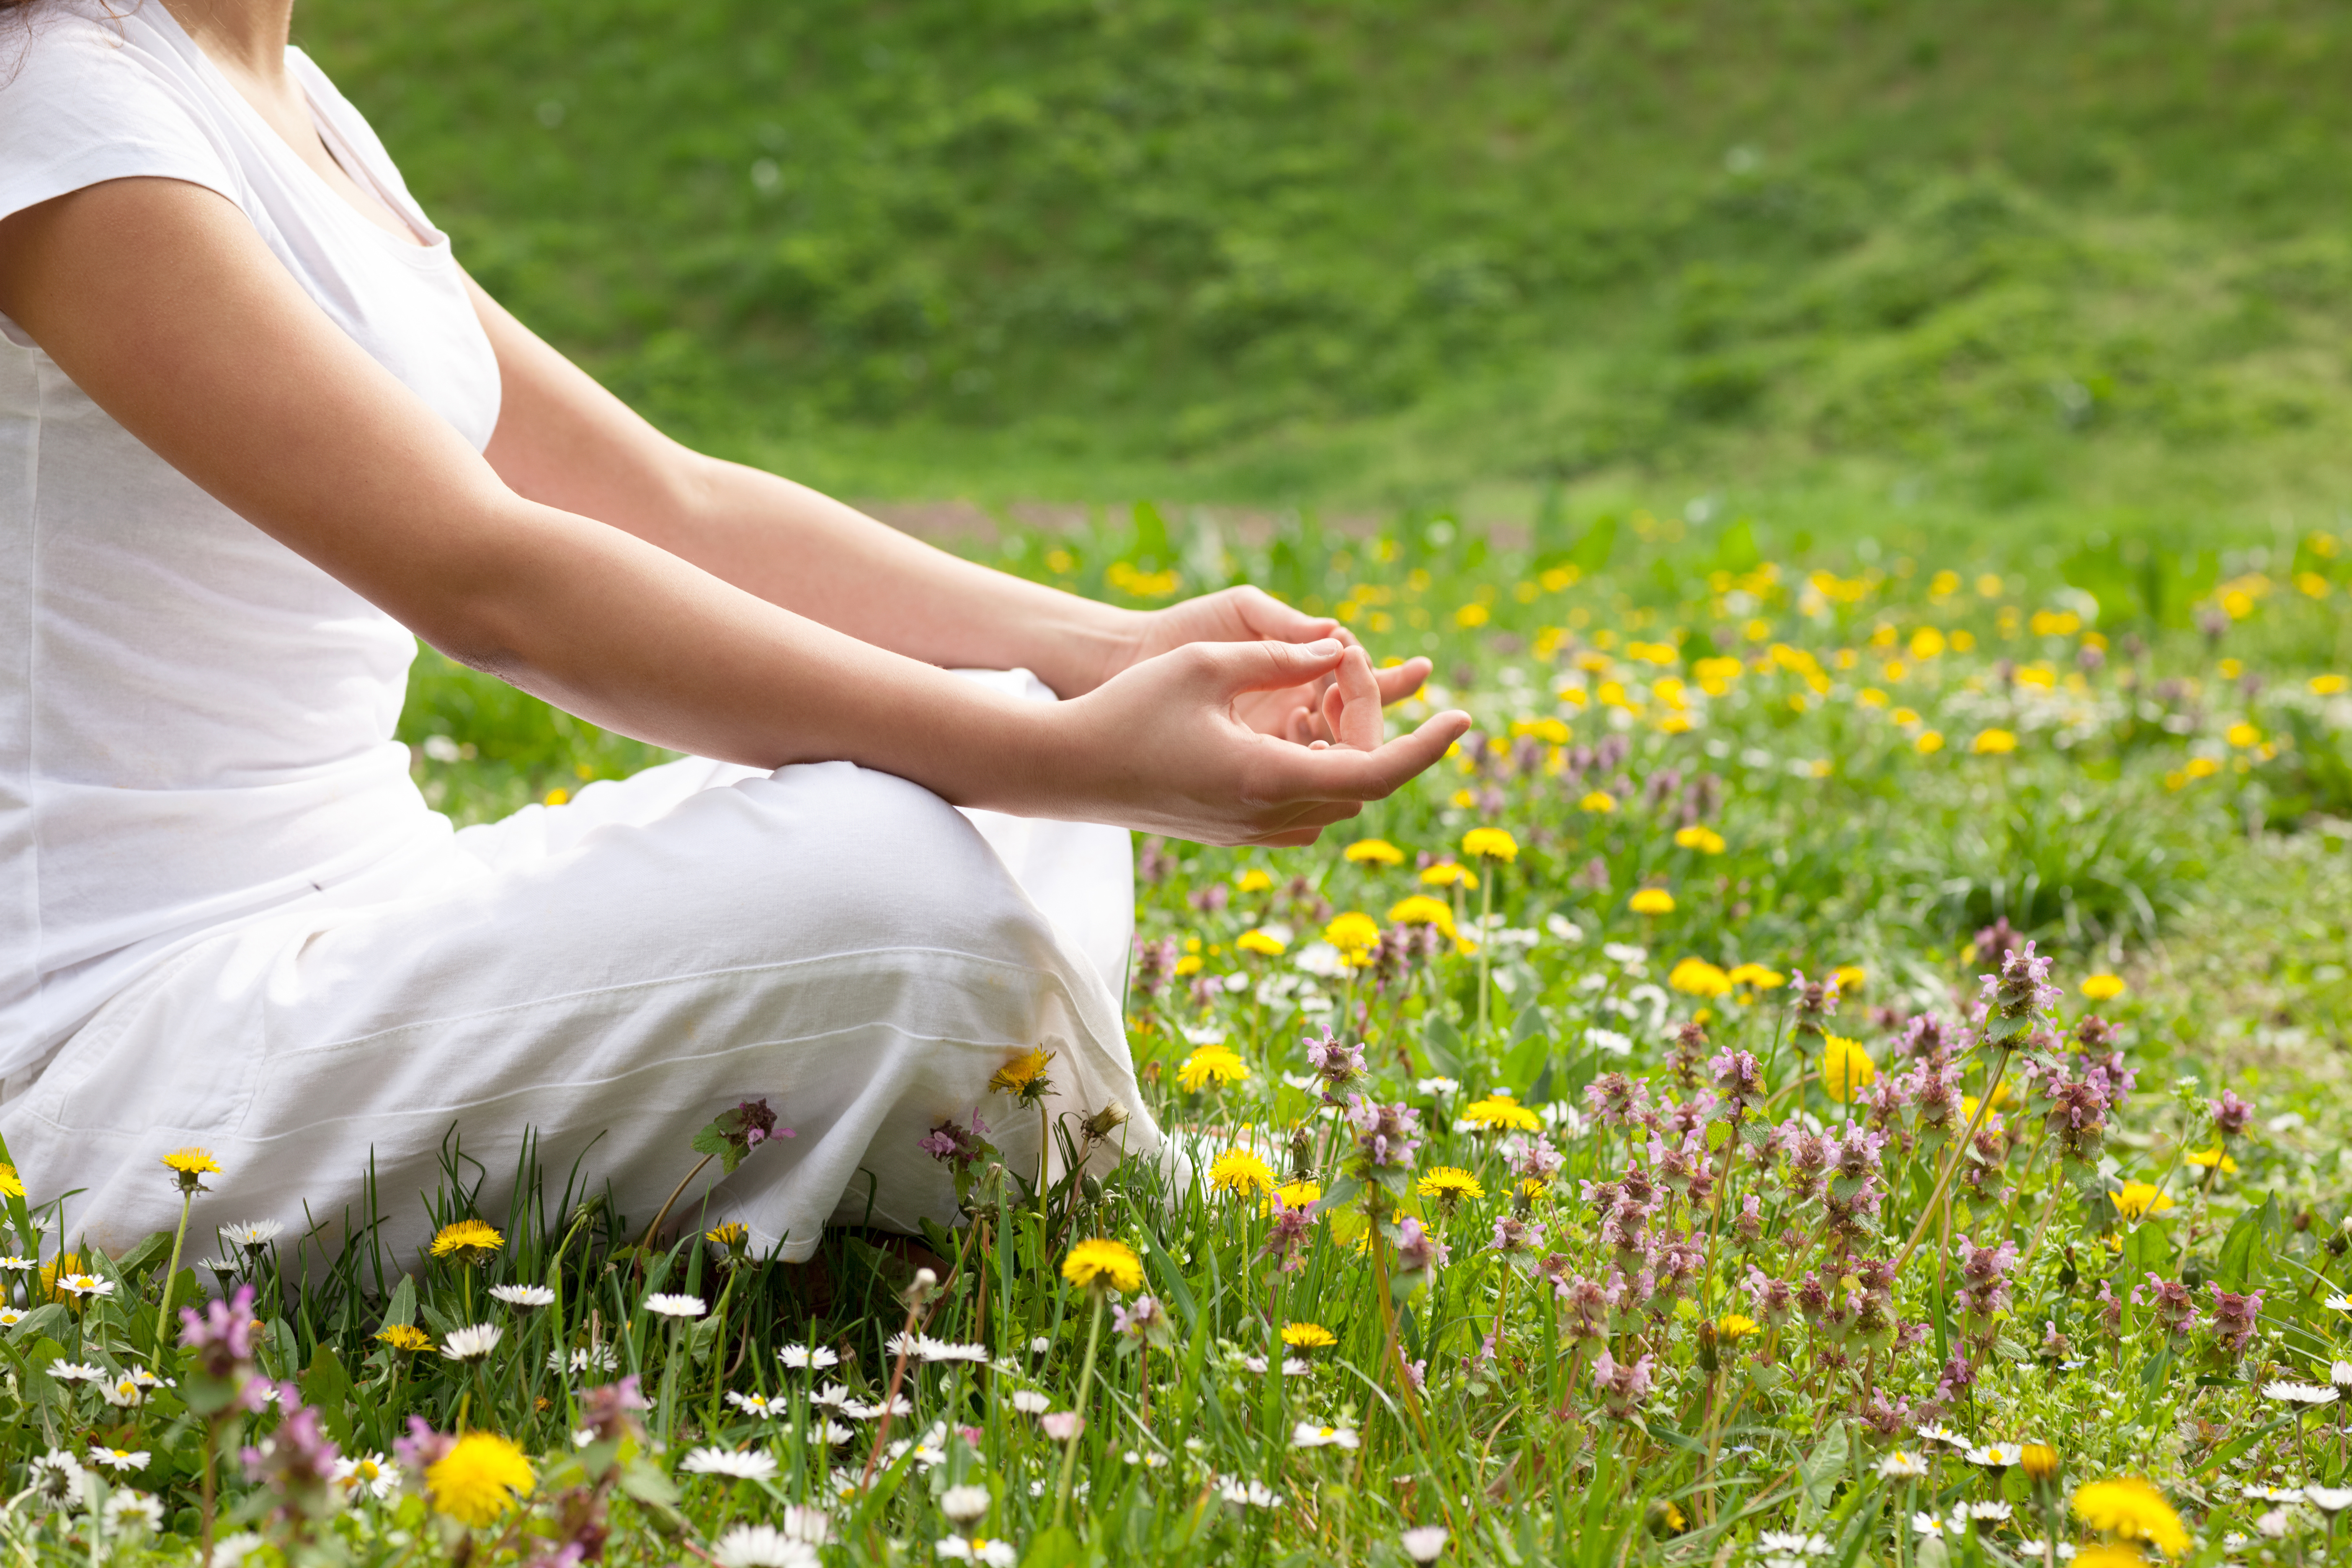 BLOSSOM: Kundalini Yoga & IBP Transformational Body Work: Know Your Self and Find Comfort in Who You Are